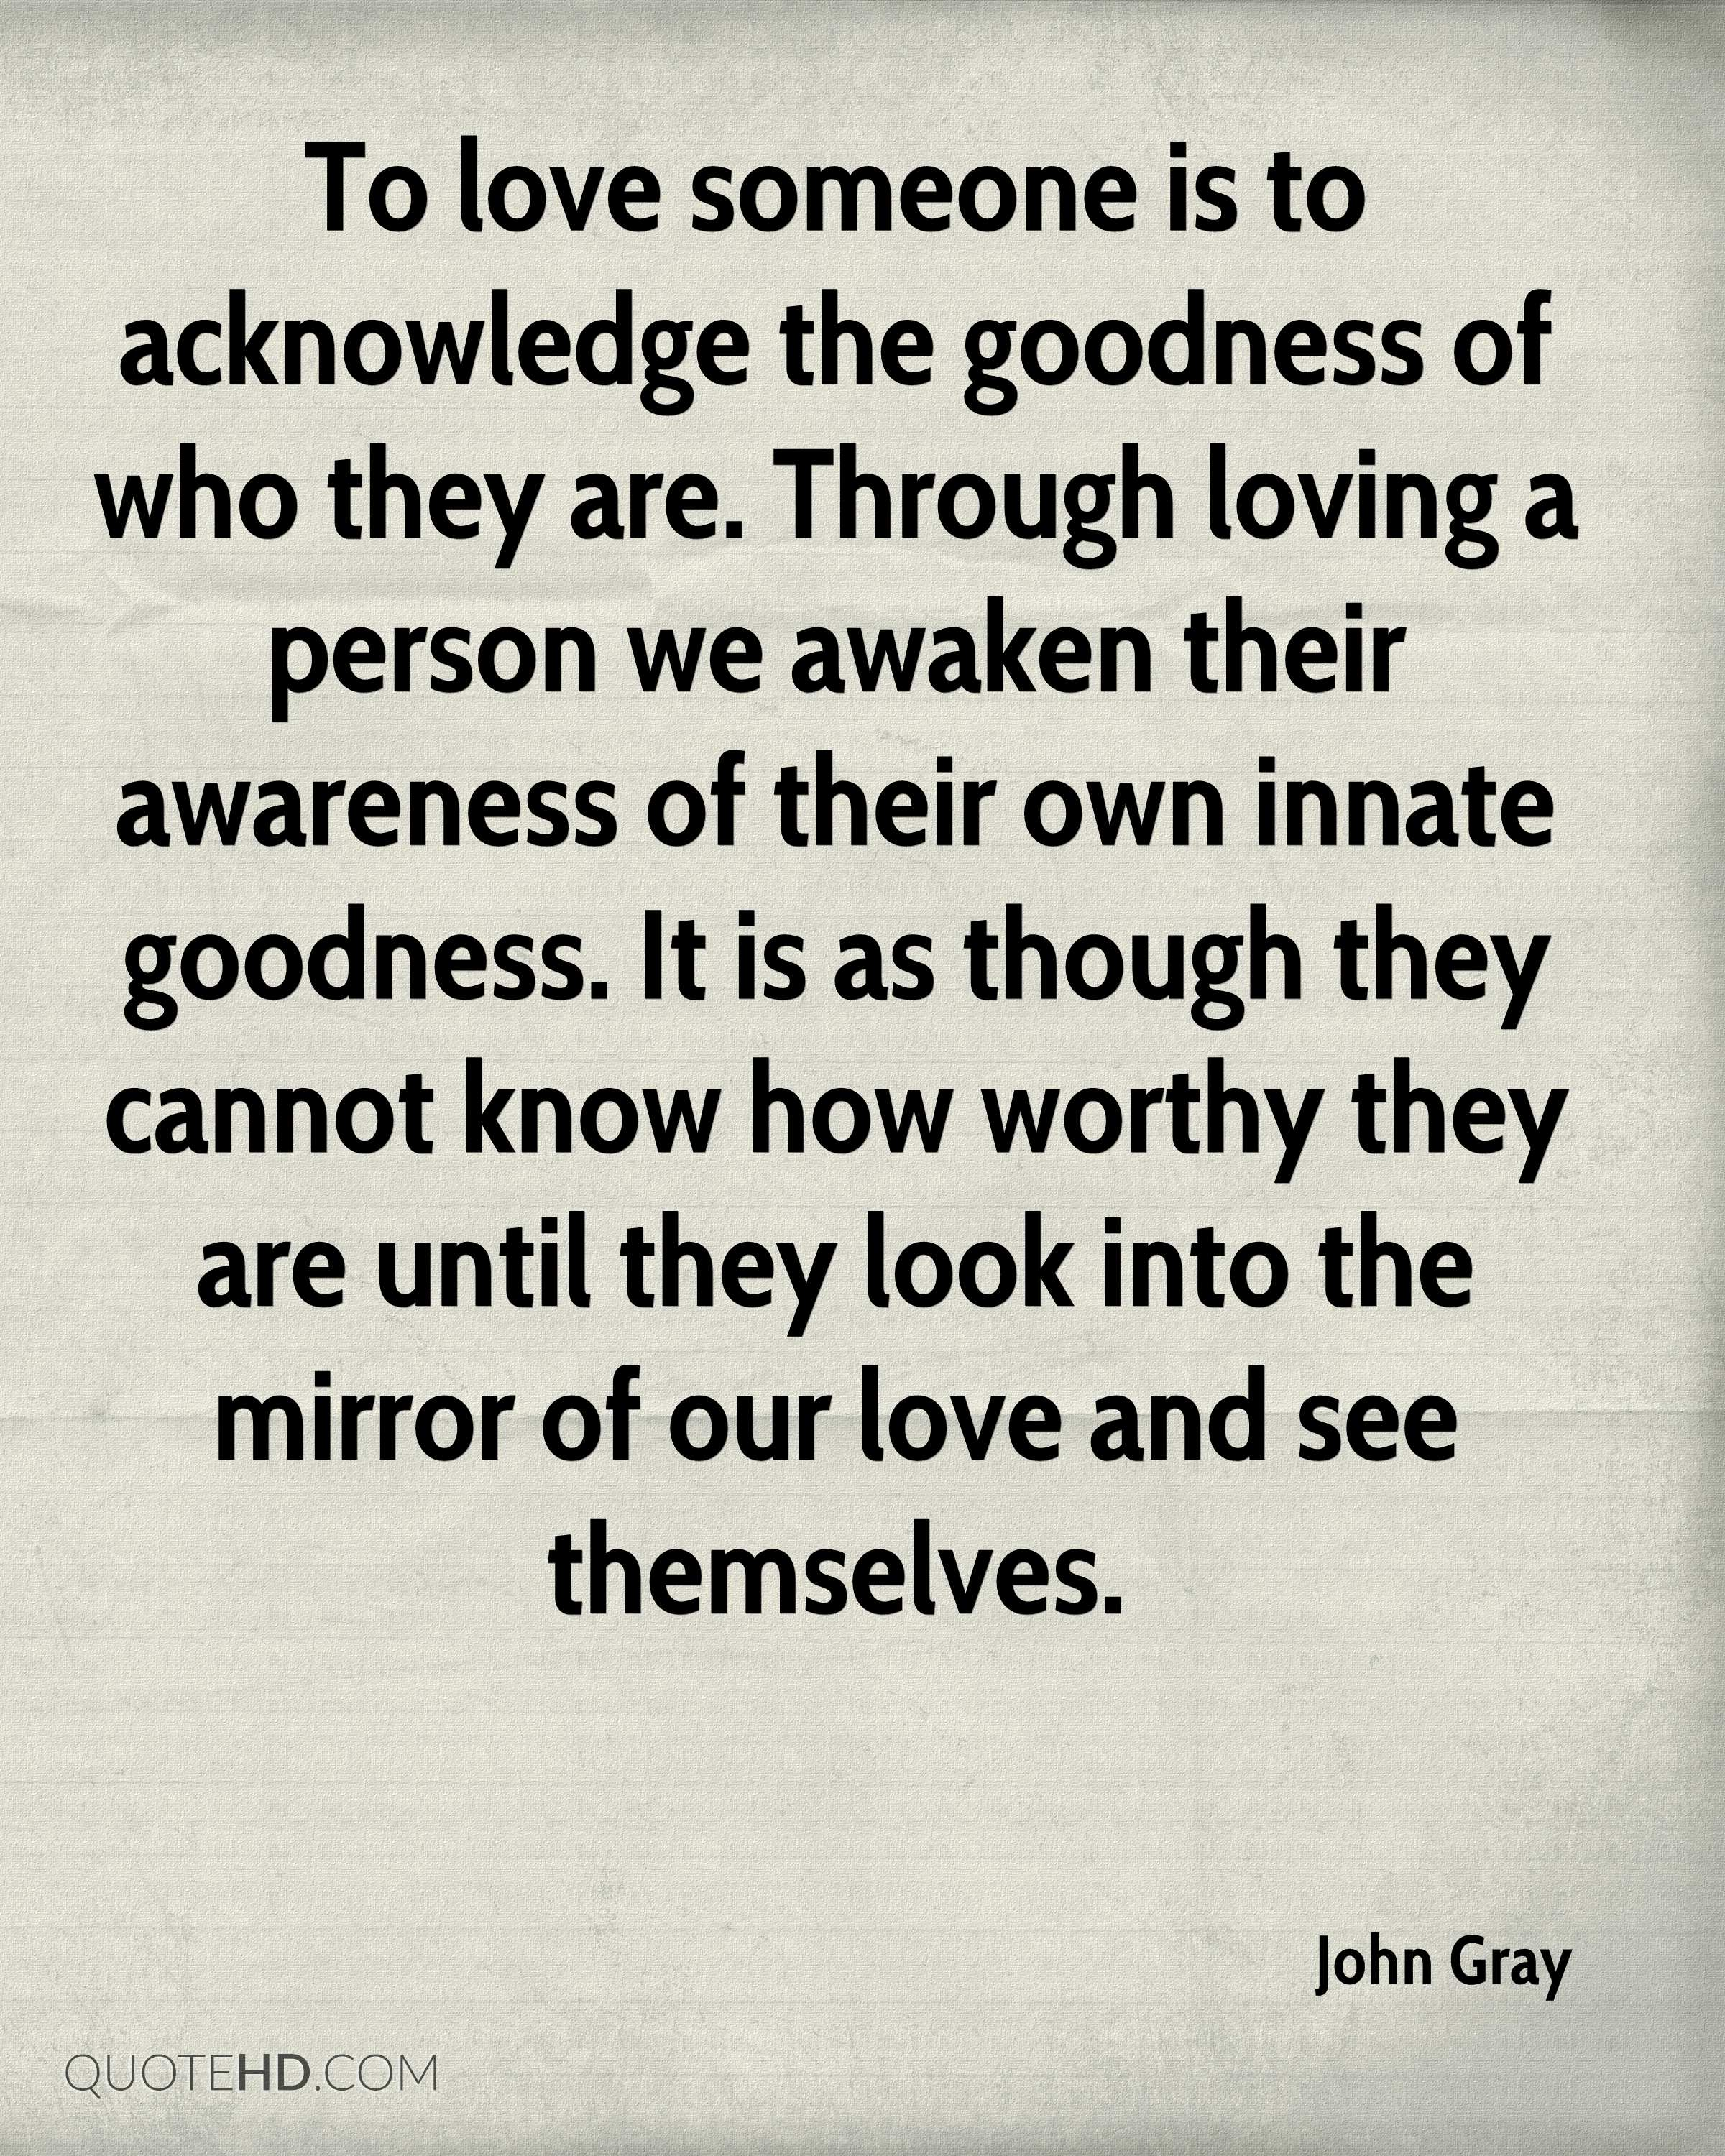 To love someone is to acknowledge the goodness of who they are. Through loving a person we awaken their awareness of their own innate goodness. It is as though they cannot know how worthy they are until they look into the mirror of our love and see themselves.